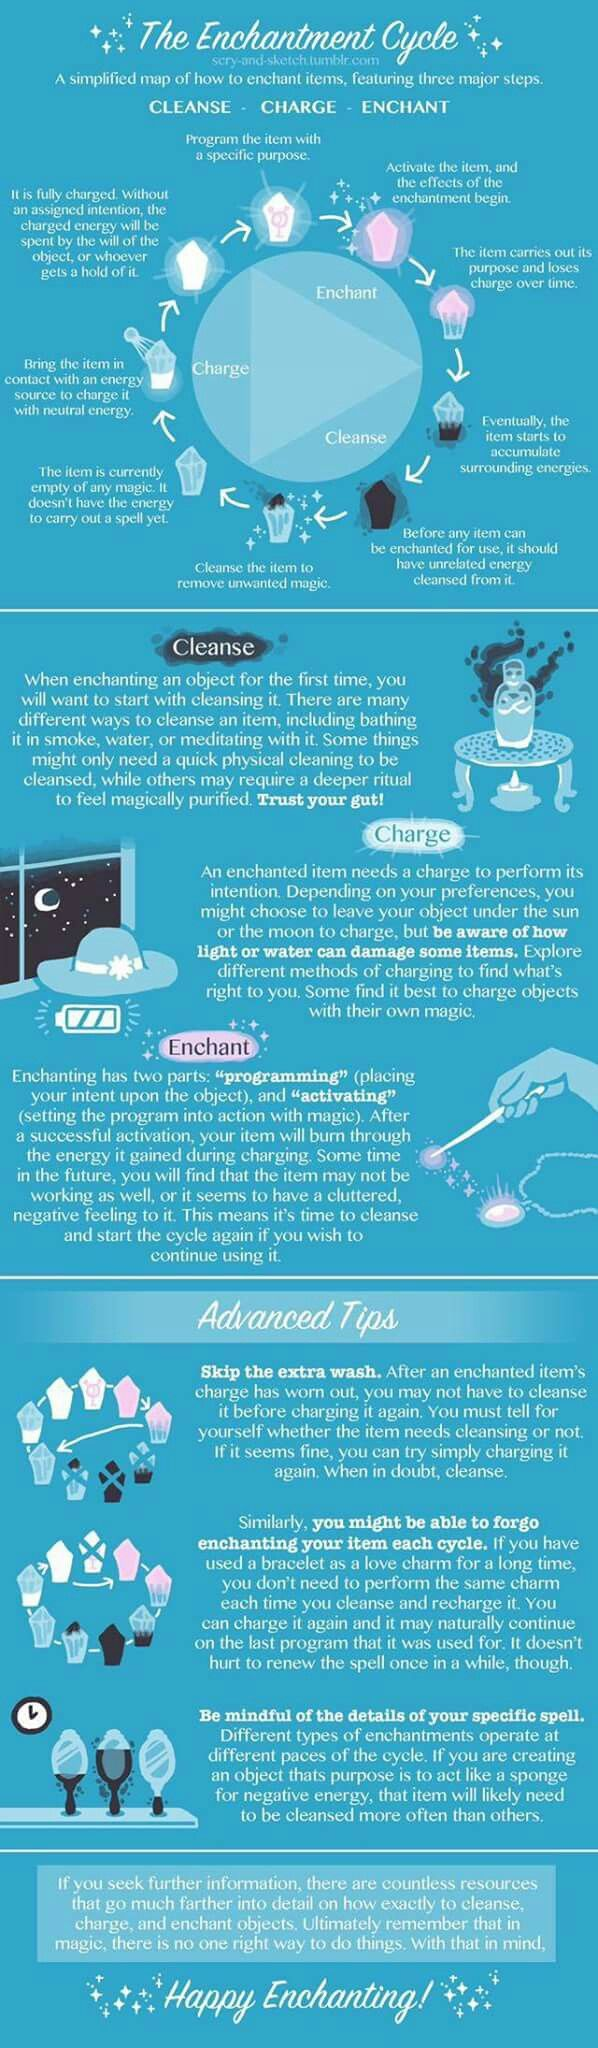 How to cleanse, charge and enchant your magic tools? Use this excellent simplified map and instruction, very helpful when you learning witchcraft, pagan rituals and magic spells